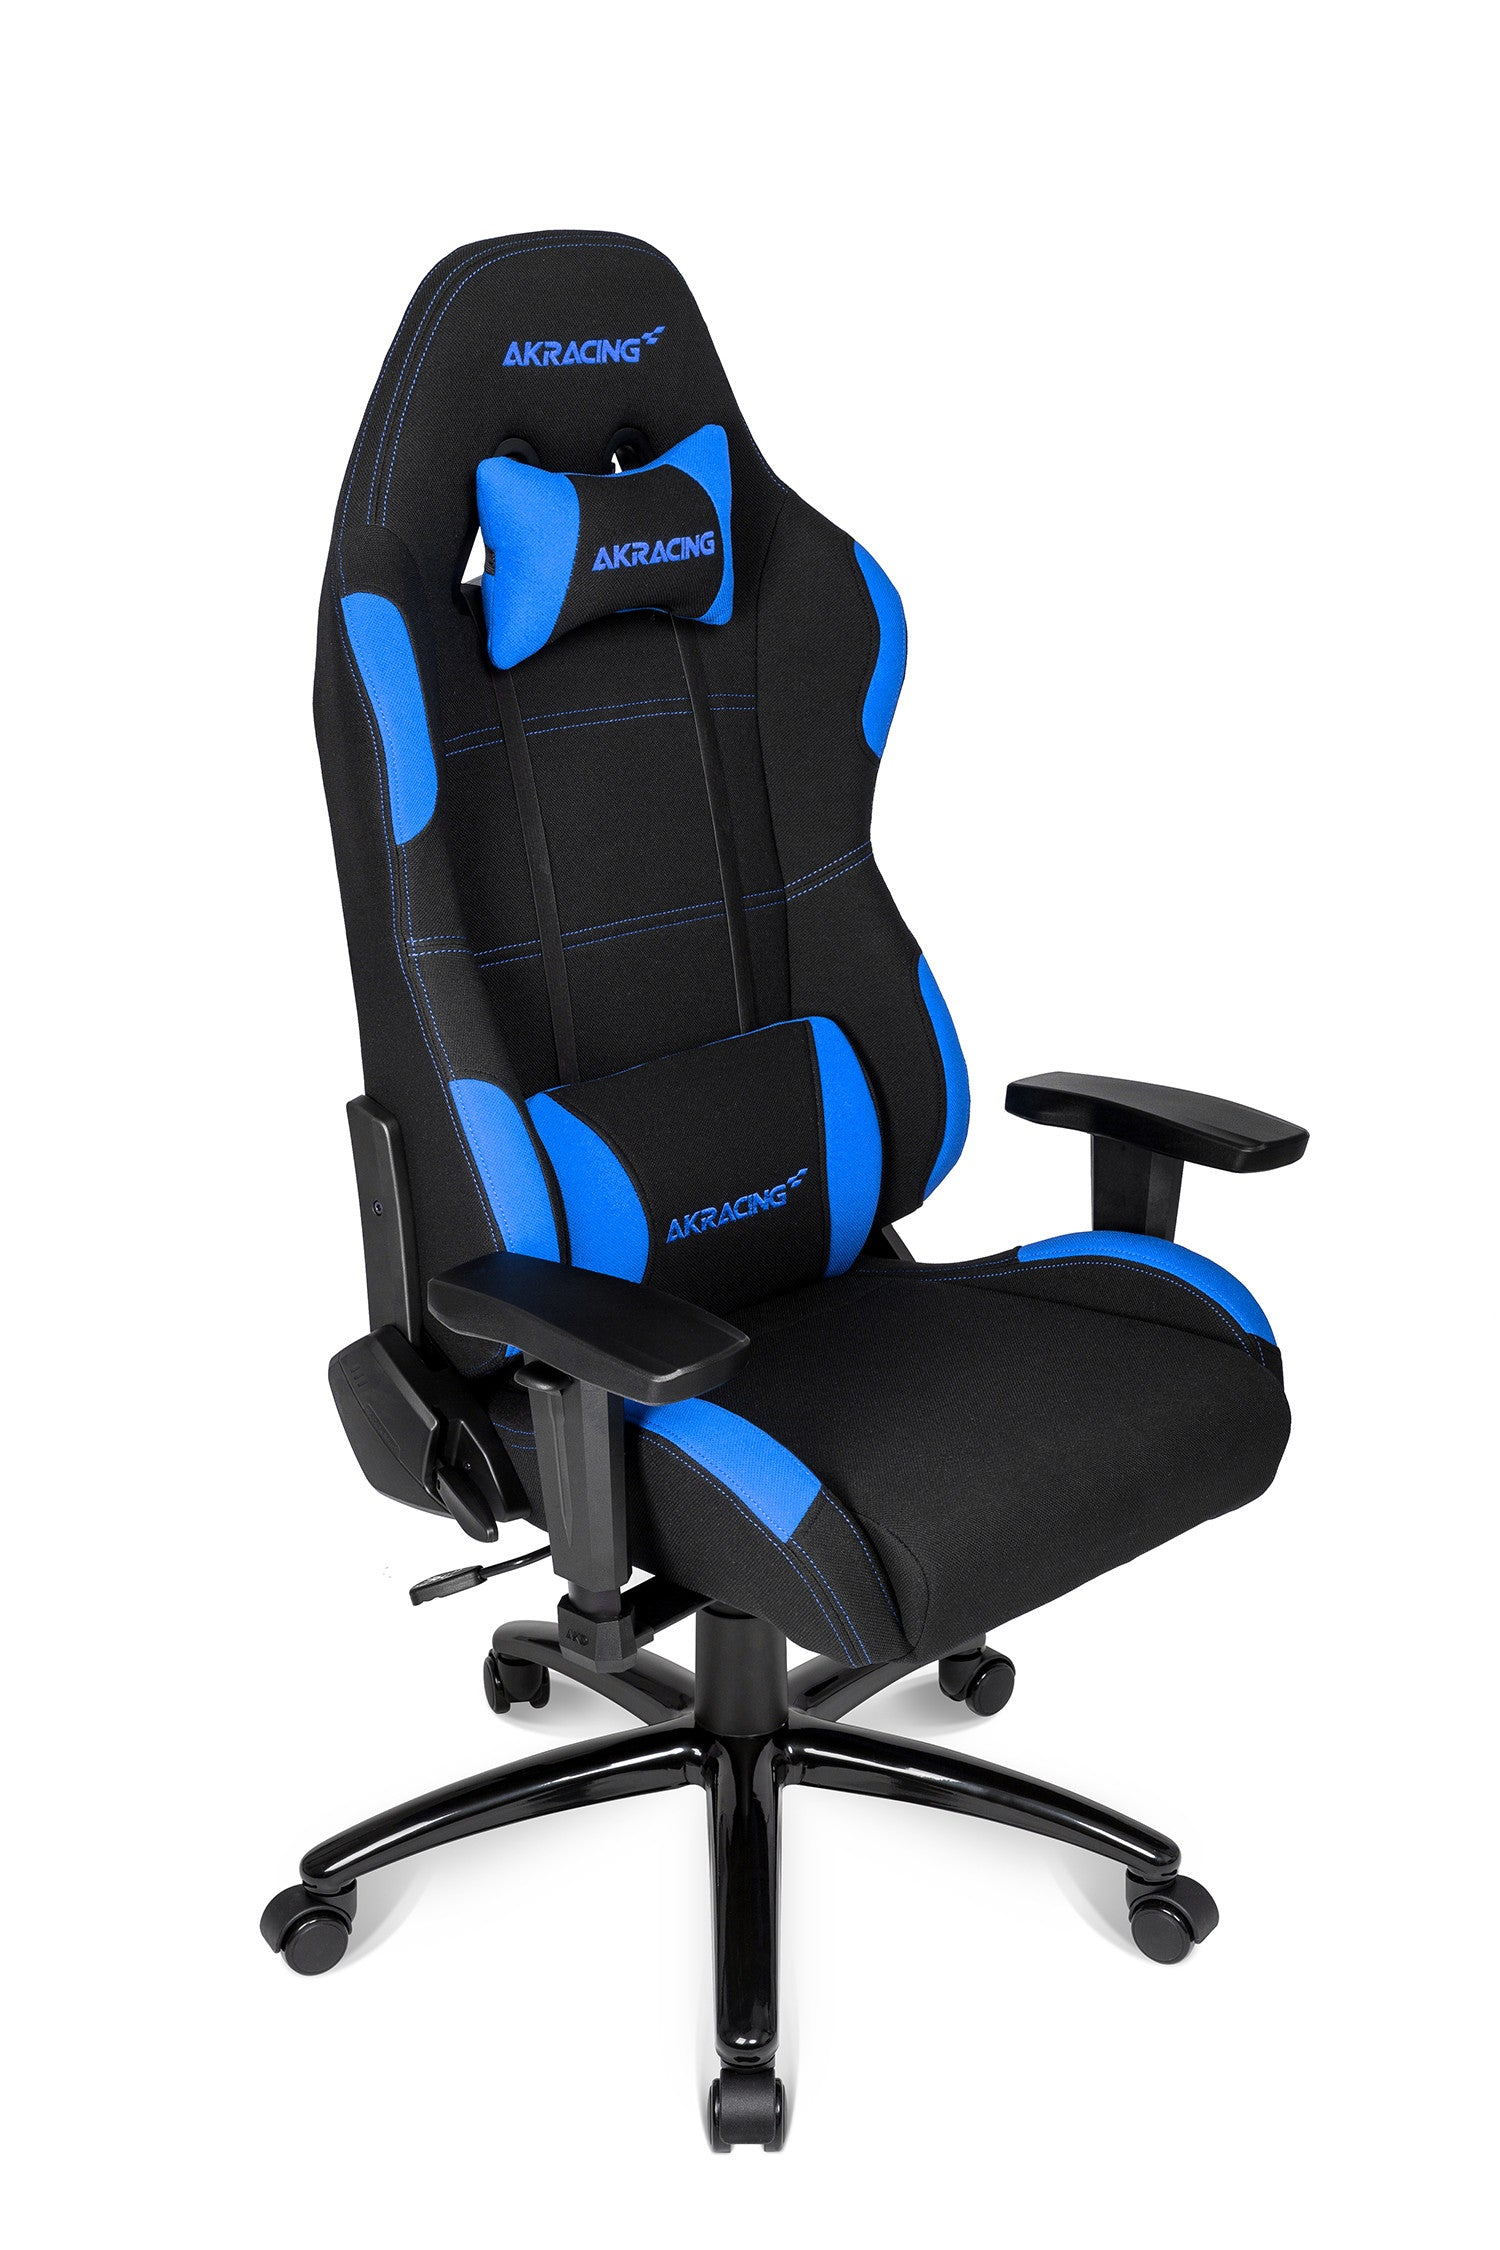 PC GAMING CHAIRS & ALL ACCESSORIES